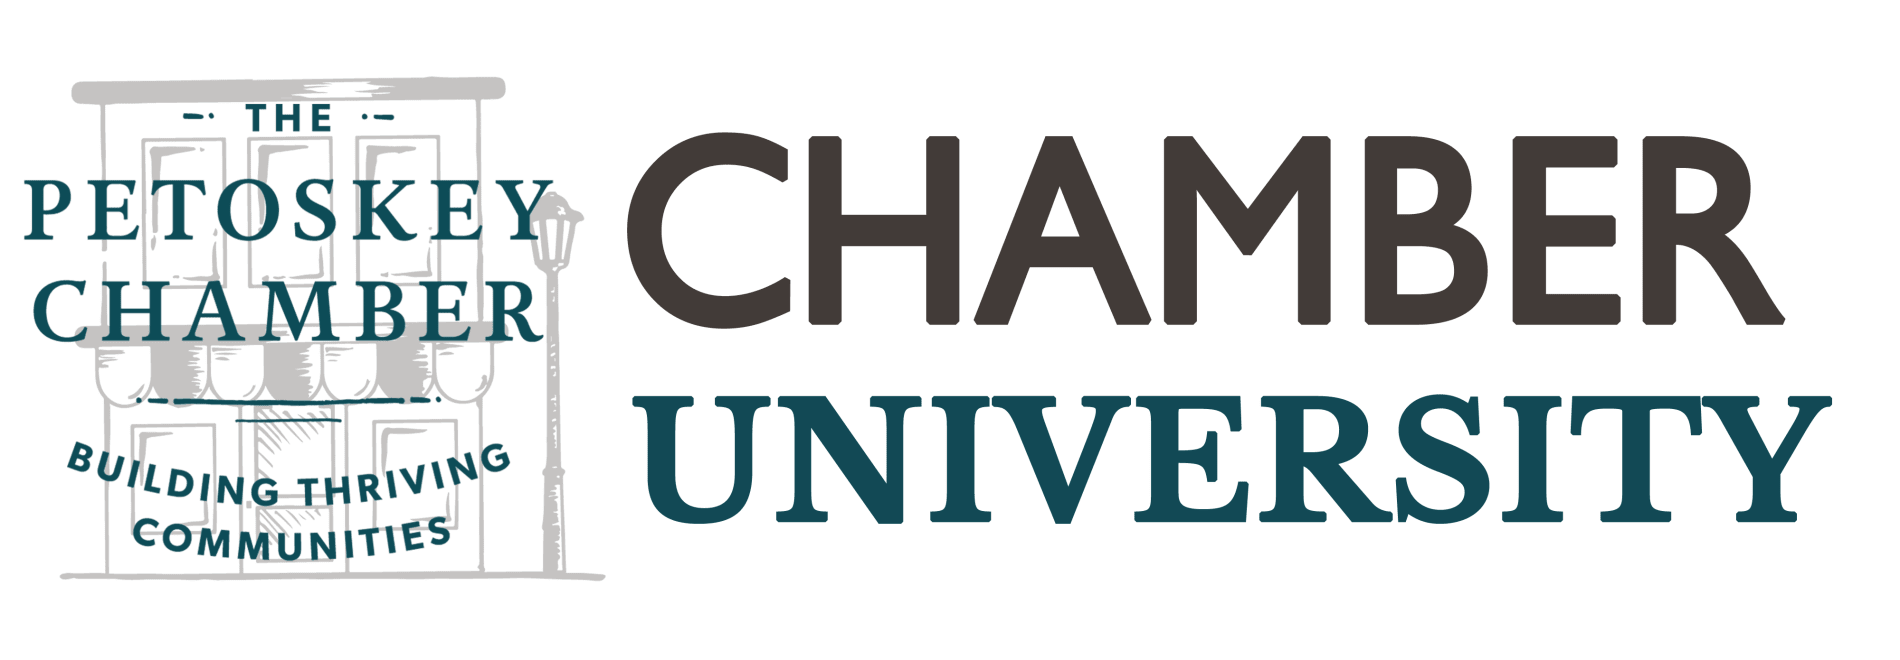 Petoskey-Chamber-University.png